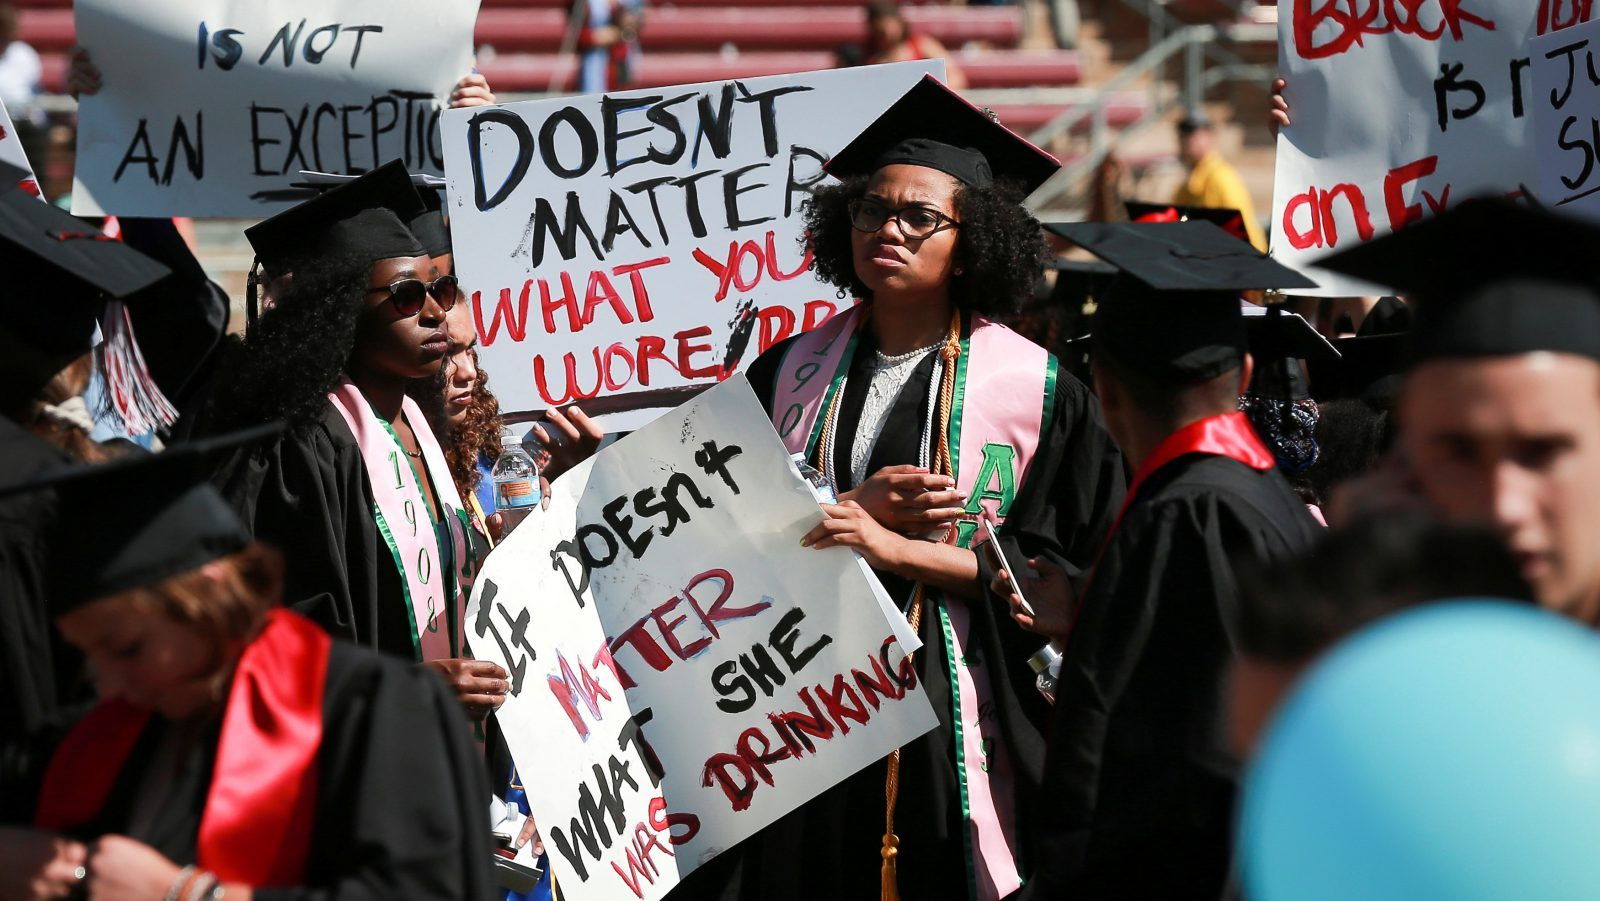 Protesters hold signs to raise awareness of sexual assault on campus in the wake of the national attention brought by the Stanford rape case at the Stanford University commencement ceremony in Palo Alto, California, U.S. June 12, 2016. The case made national headlines after the judge handed down what many considered to be a particularly light sentence. REUTERS/Elijah Nouvelage - RTX2FTG7